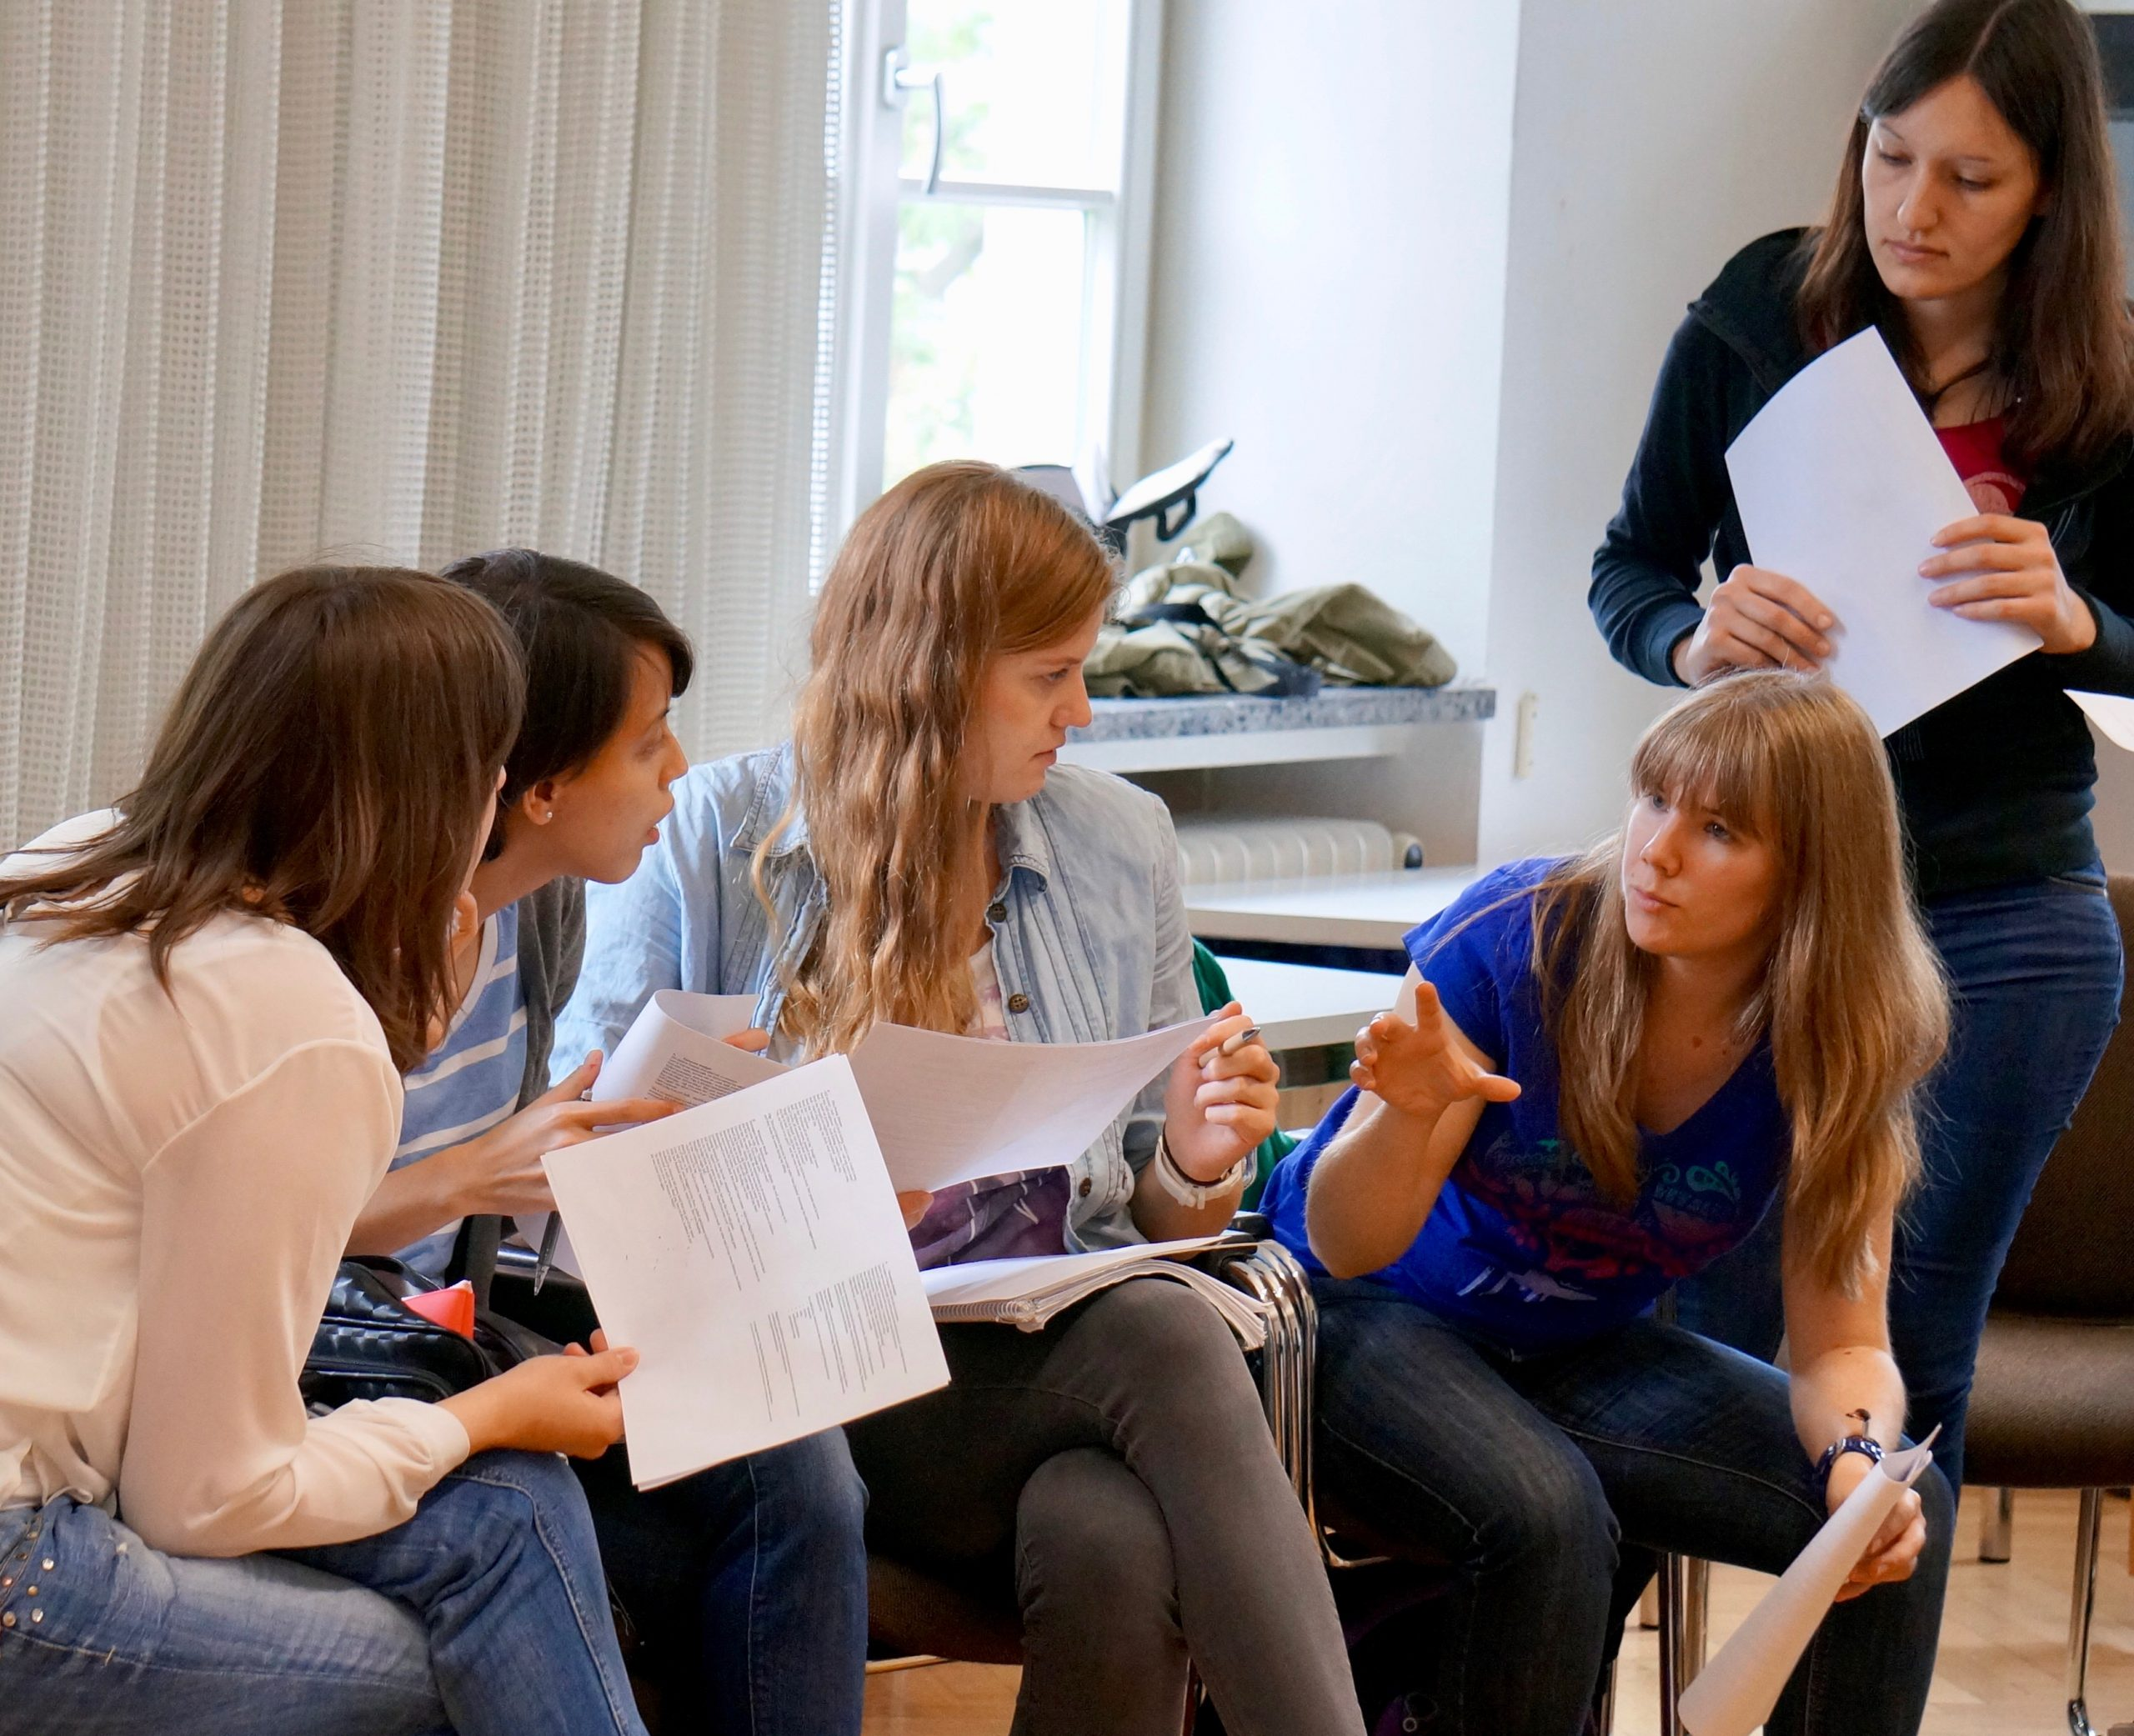 A teacher-training workshop, Karlsruhe Education University